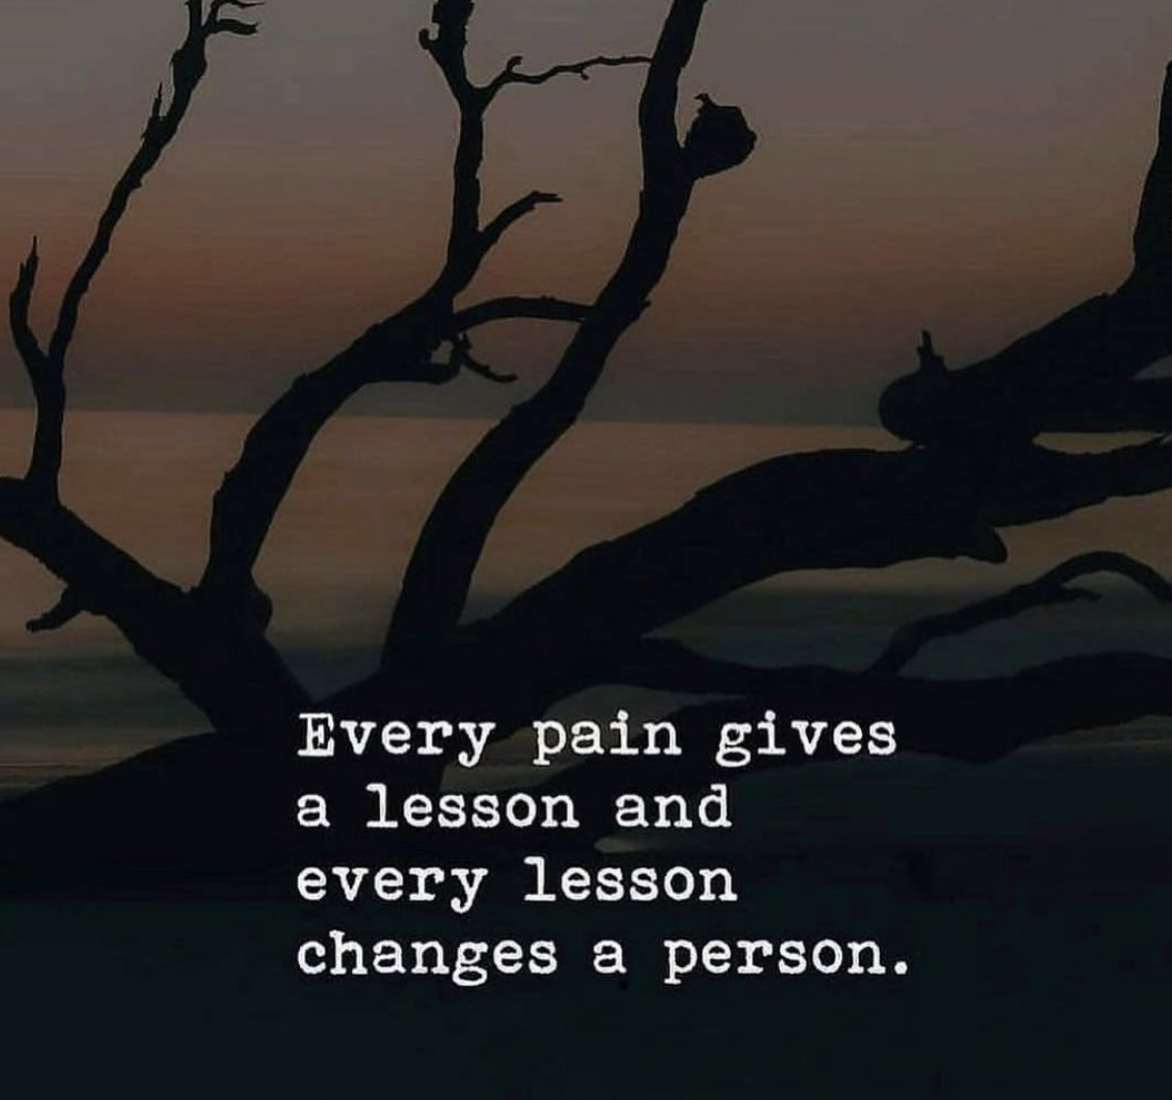 [Image] Every pain gives a lesson and every lesson changes a person.